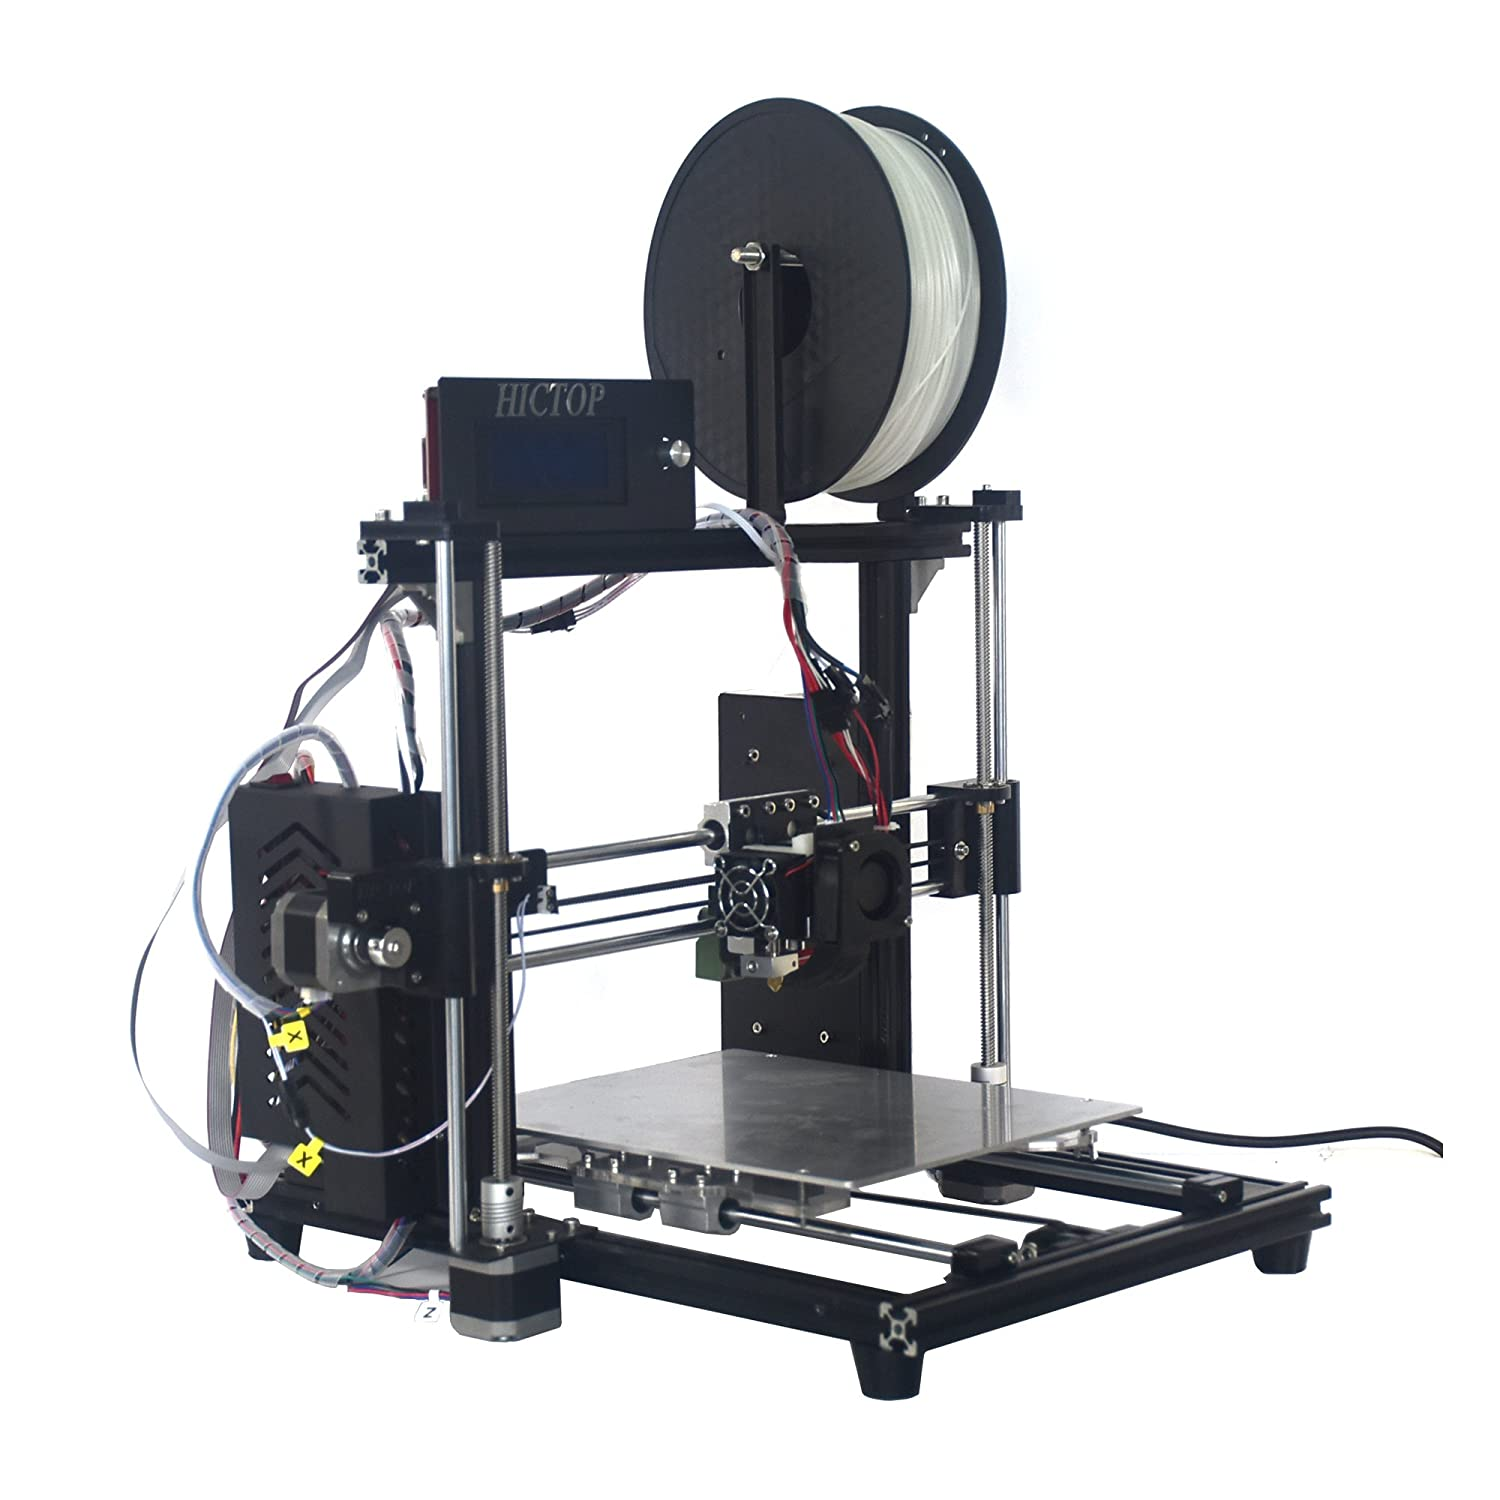 Hictop Auto Leveling Desktop 3d Printer Prusa I3 Diy Kit High Camt Launching Firstever For Printed Circuit Board Accuracy Cnc Self Assembly 106 X 79 74 Printing Sizefilament Not Included